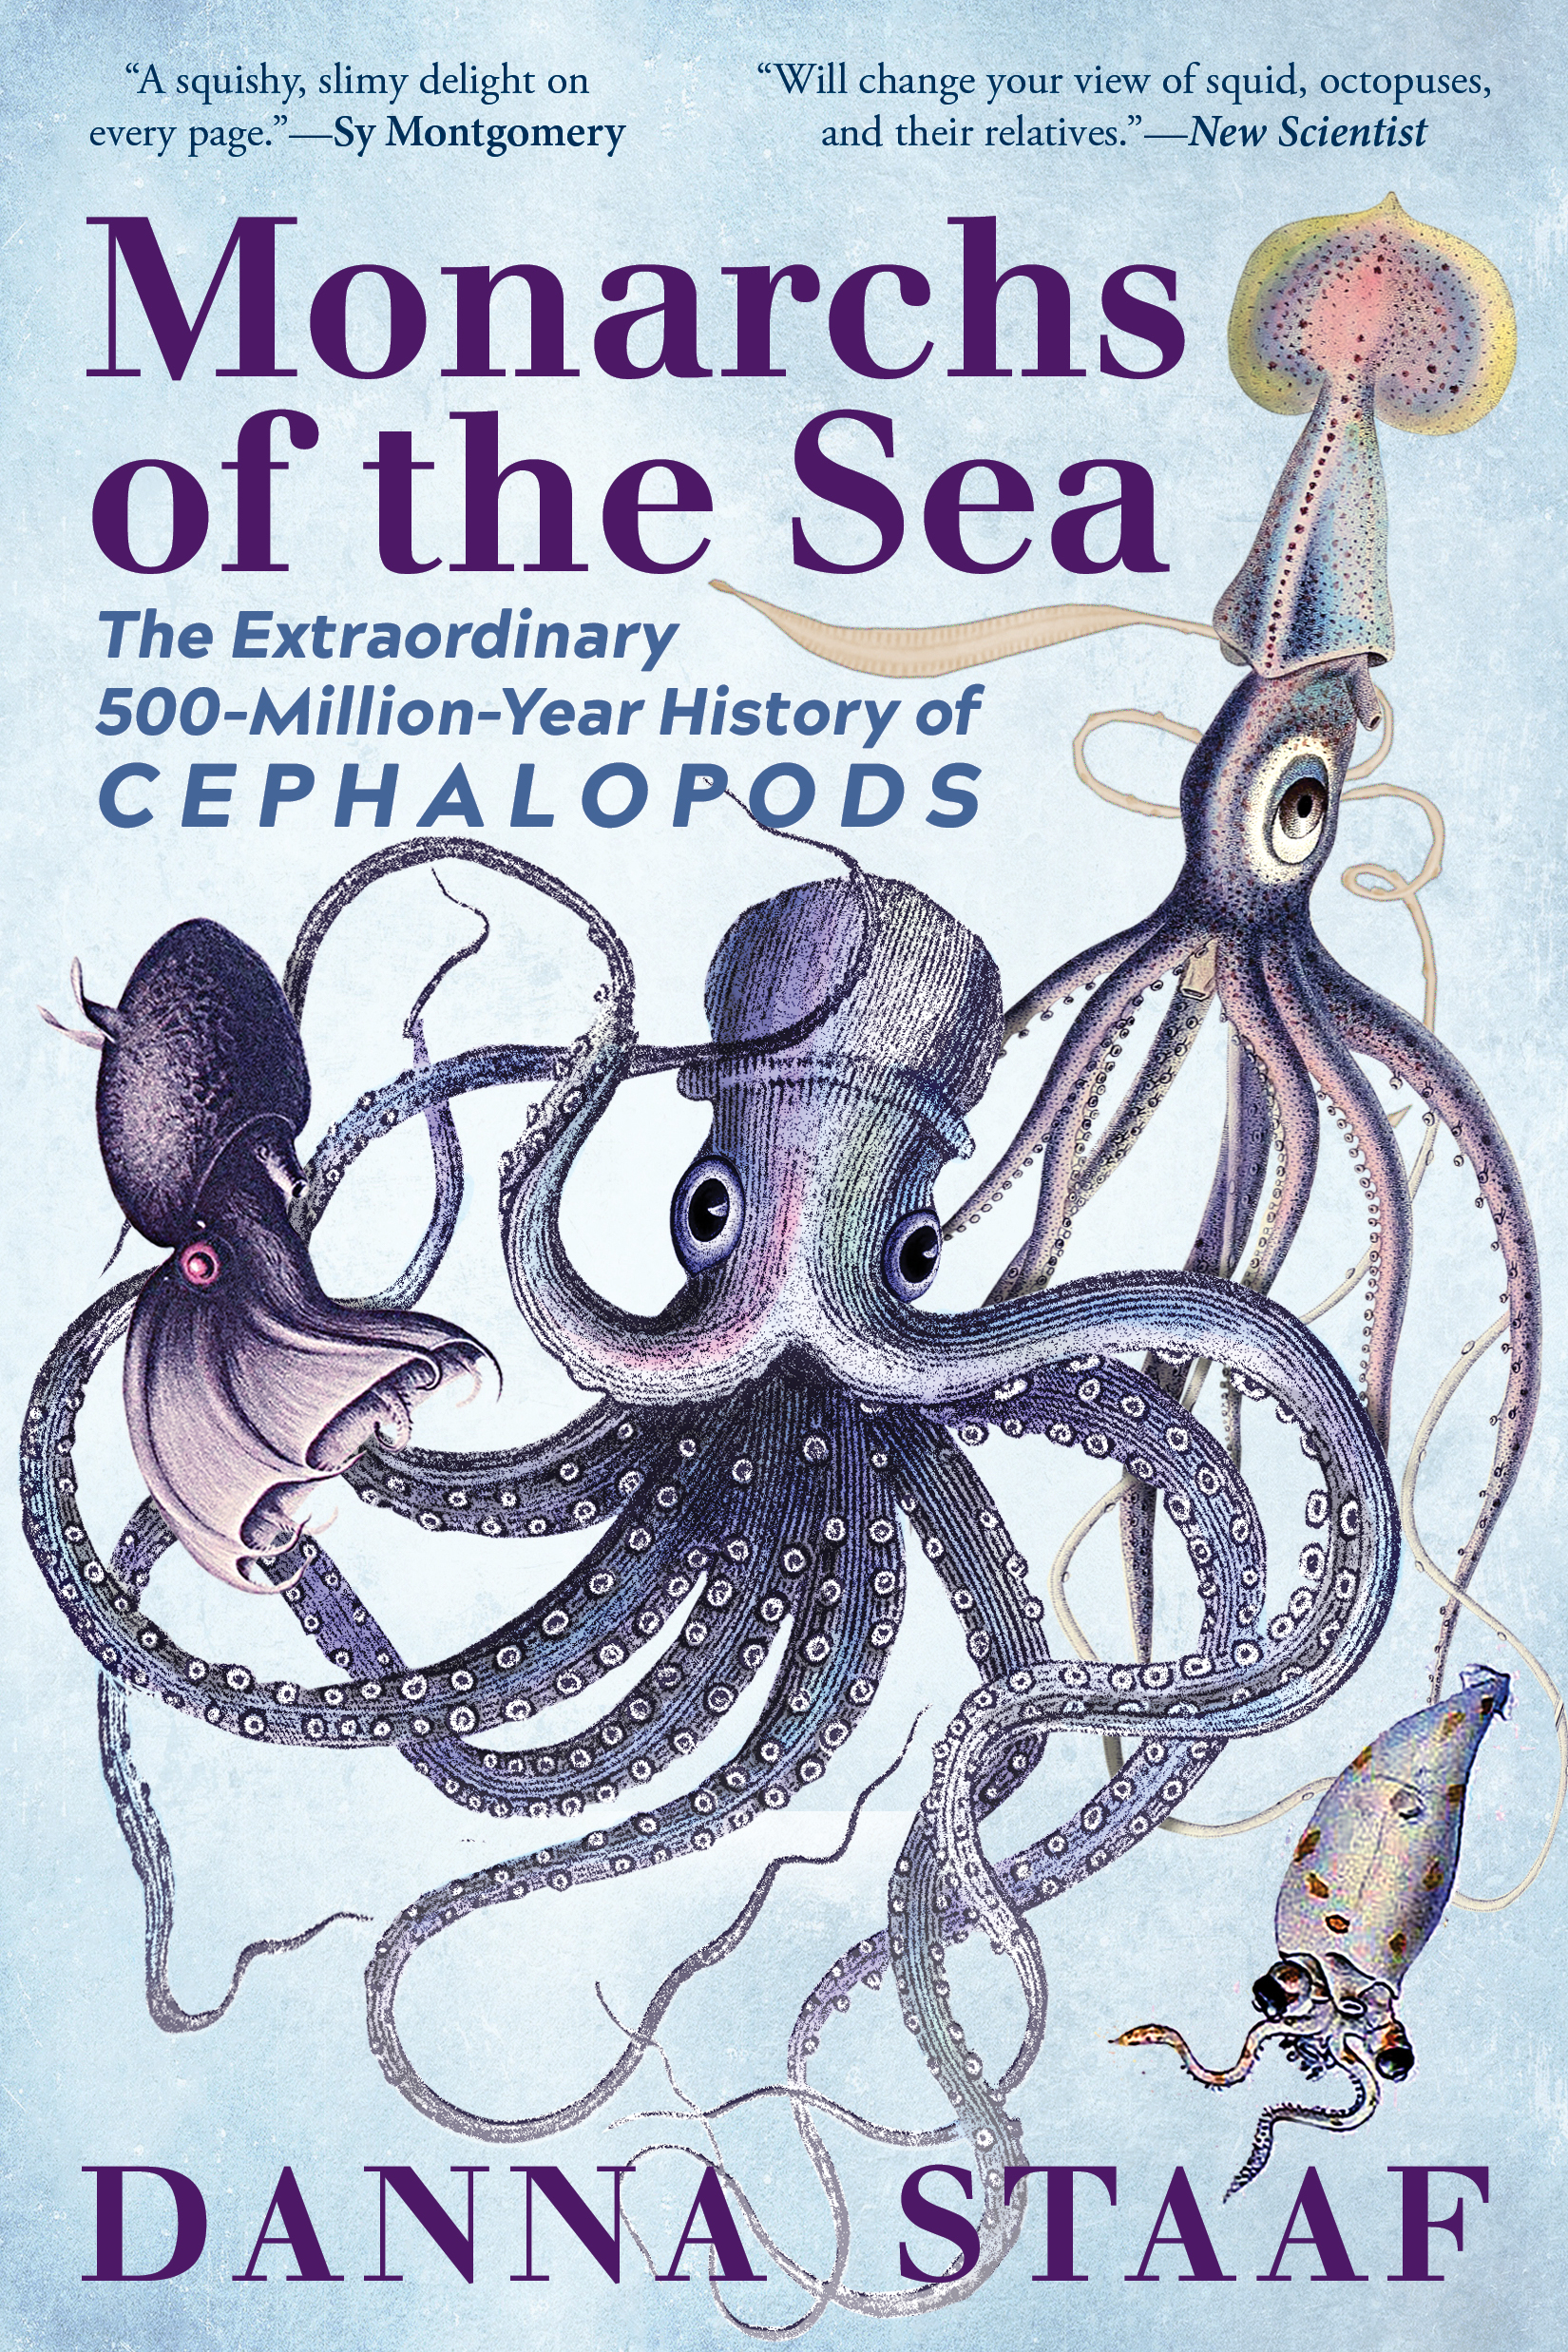 [PDF] [EPUB] Monarchs of the Sea: The Extraordinary 500-Million-Year History of Cephalopods Download by Danna Staaf